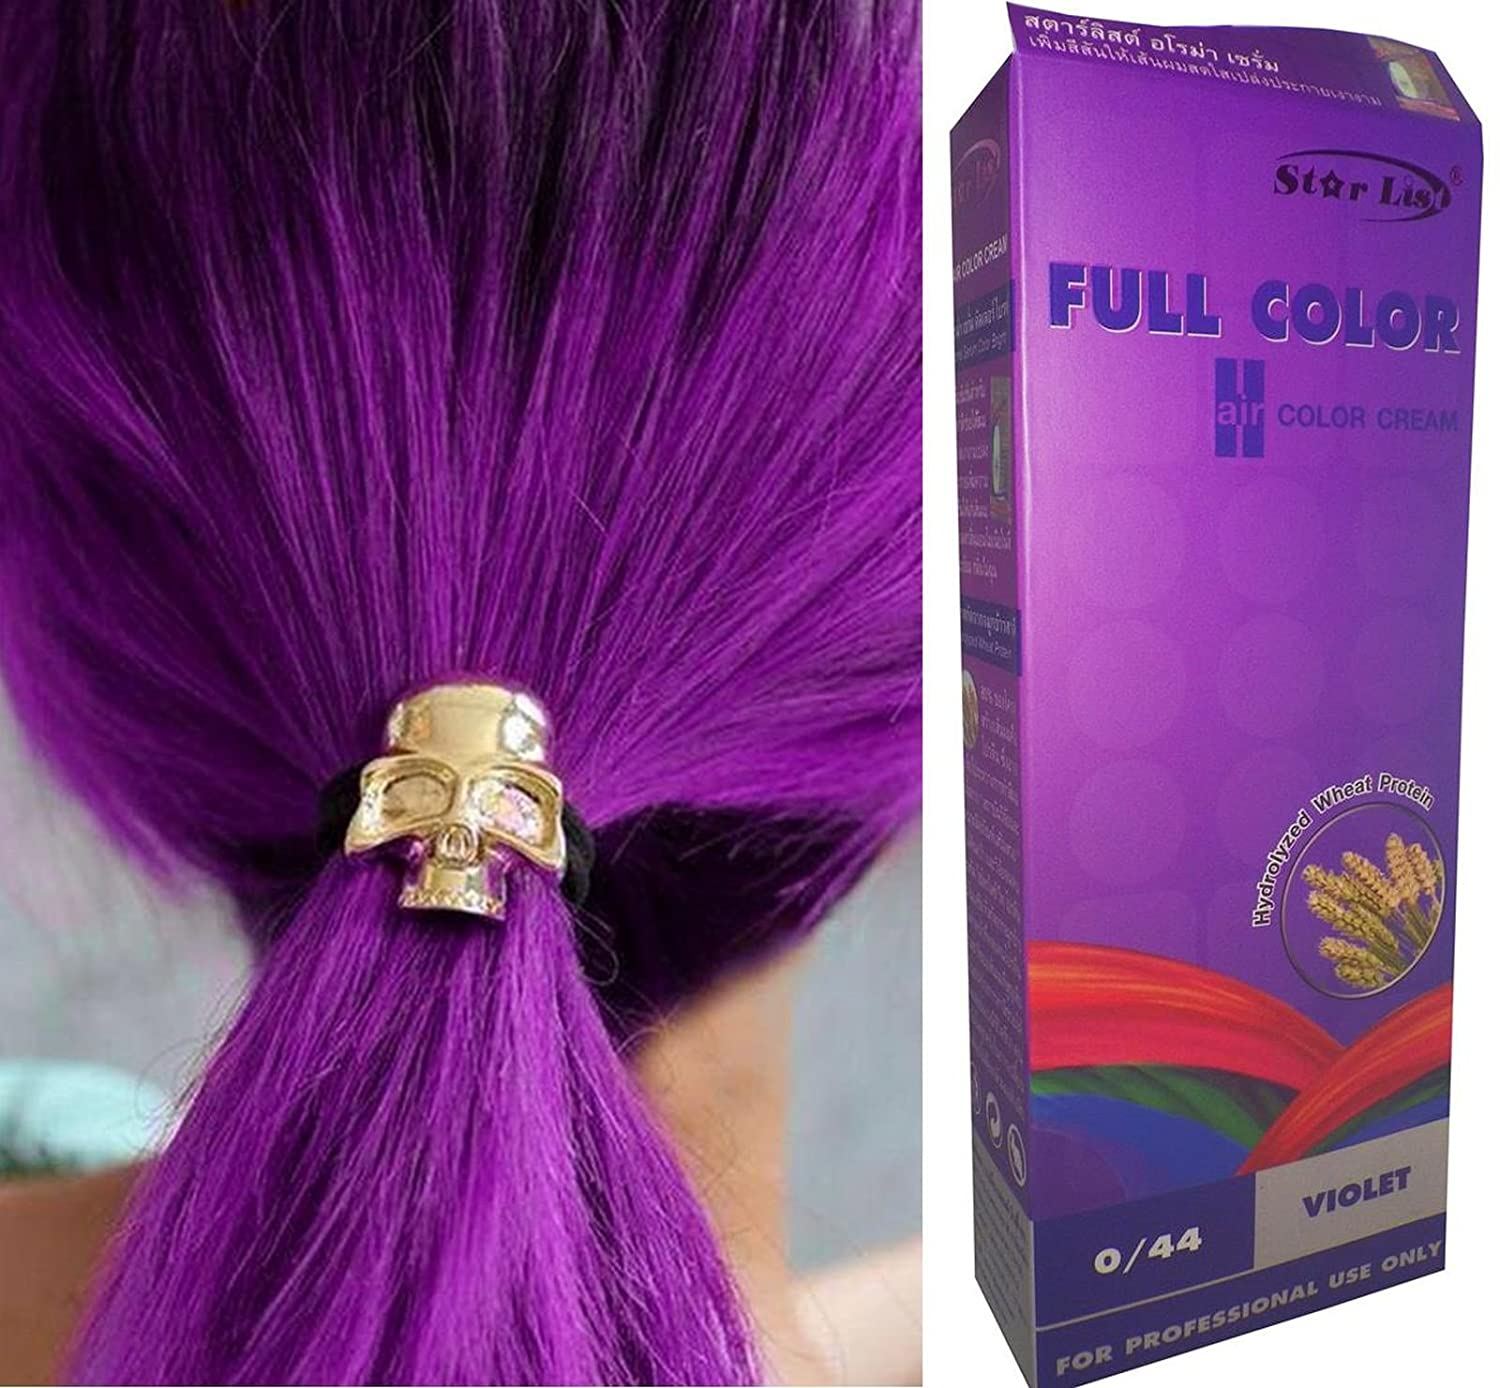 Premium Permanent Hair Colour Cream Dye Bright Blue 033 Punk Goth